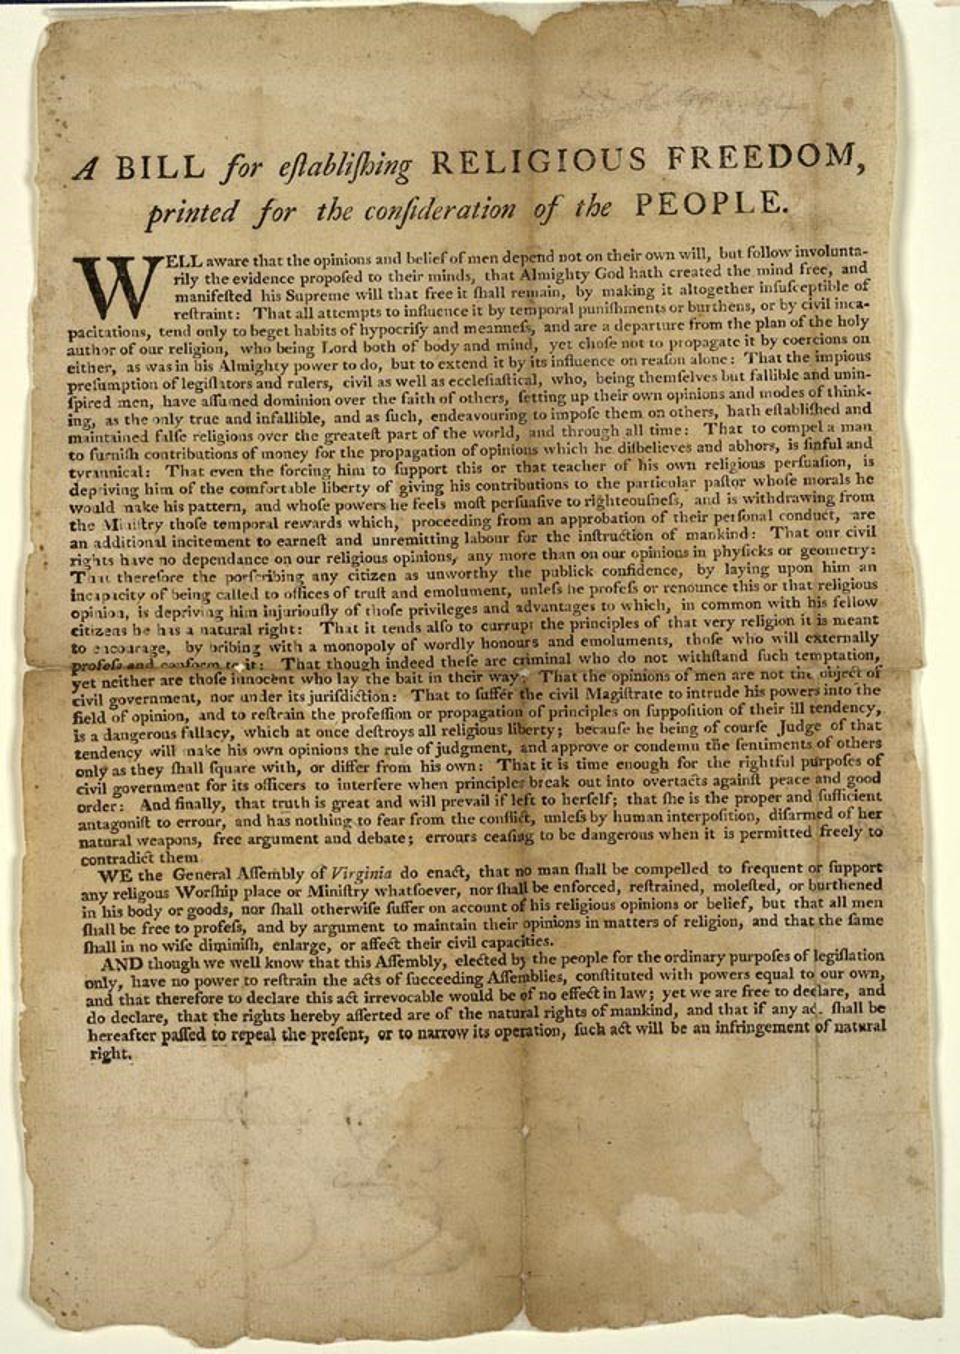 A Bill for the Religious Freedom of the People, penned by Thomas Jefferson in 1786